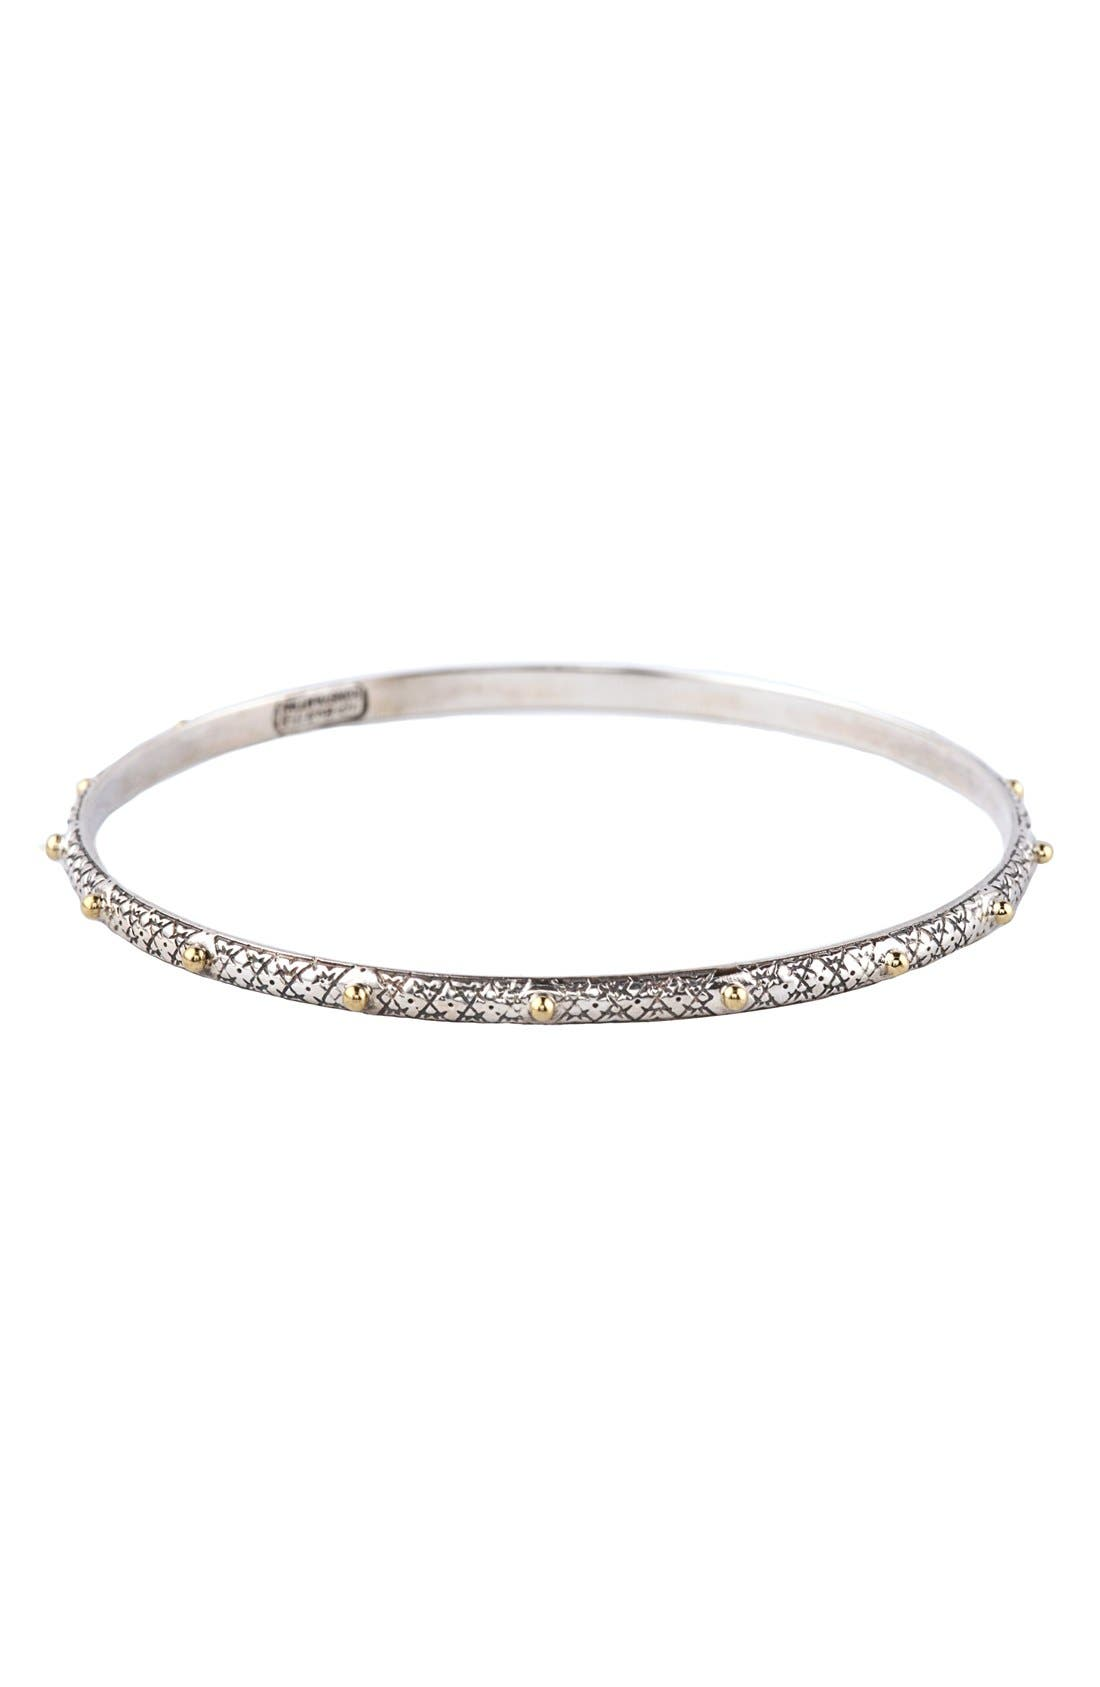 Alternate Image 1 Selected - Konstantino 'Classics' Two-Tone Bangle